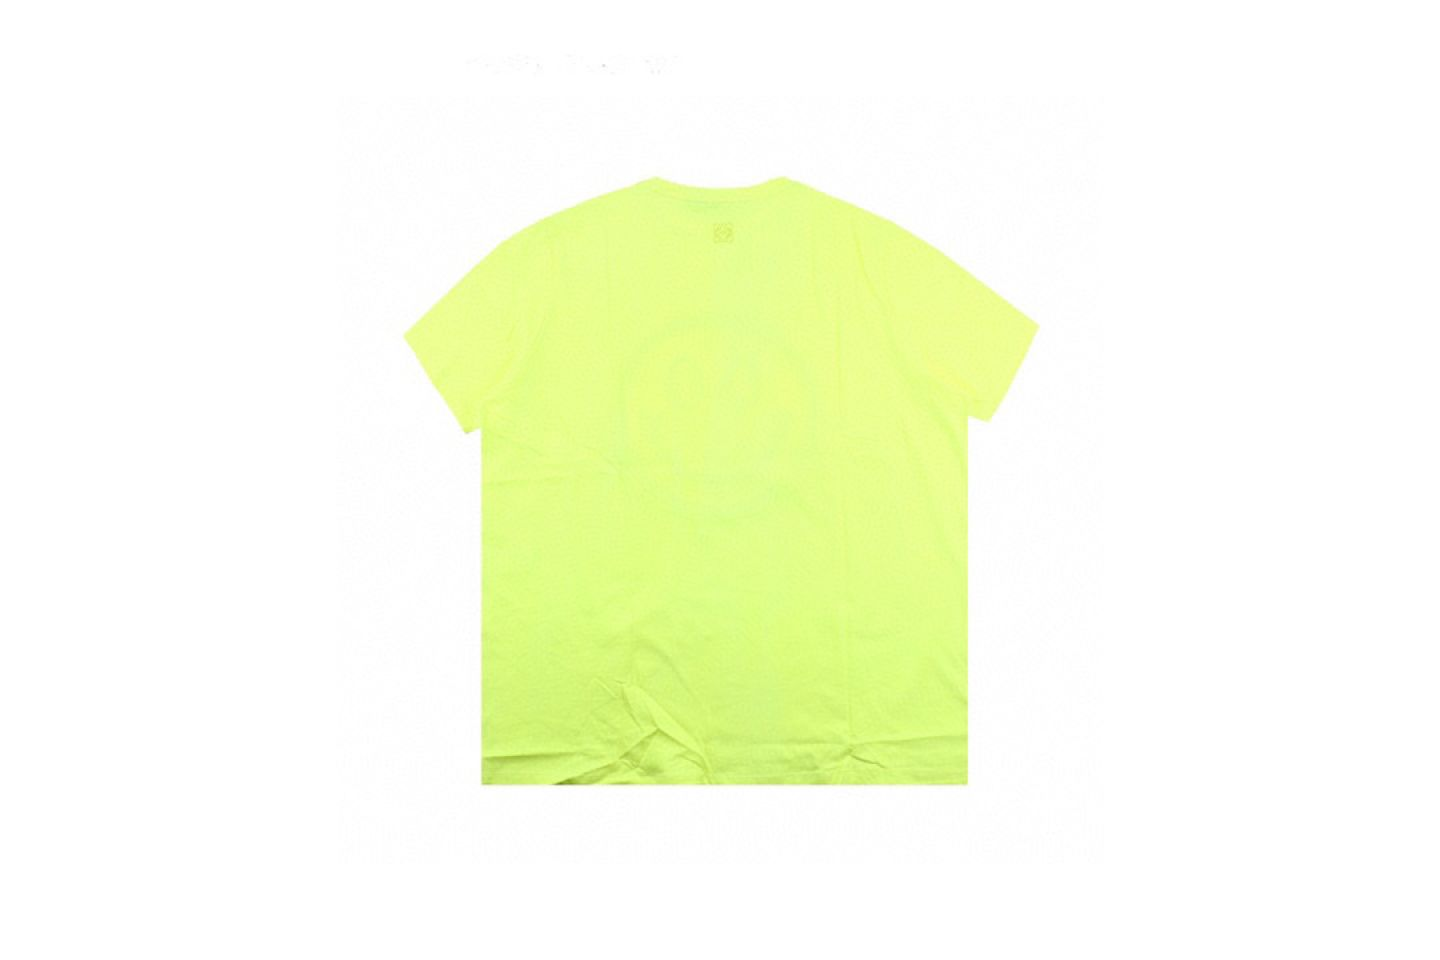 Shirt LOEWE x SMILEY 20ss fluorescent smiley short sleeve T-shirt yellow 5 loewe_x_smiley_20ss_fluorescent_smiley_short_sleeve_t_shirt_yellow_5